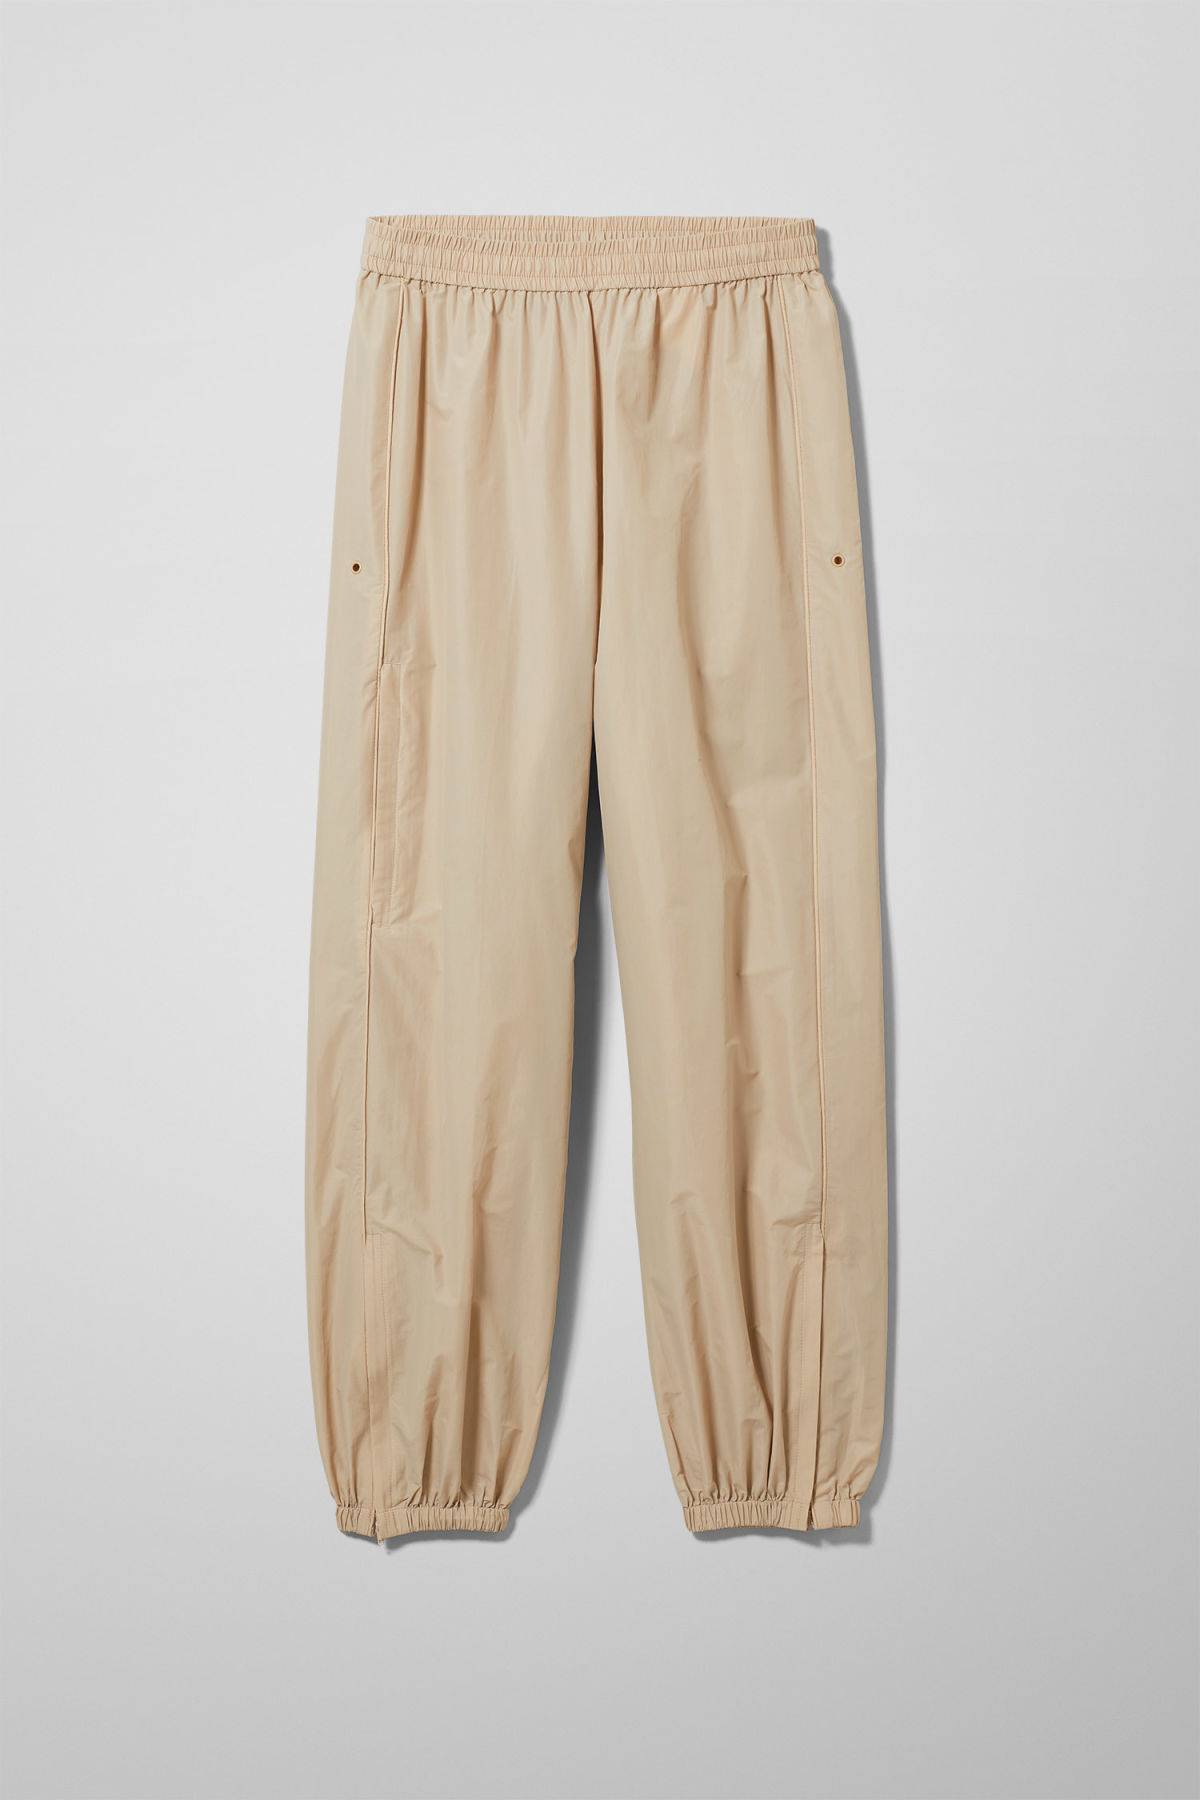 Atomic Tracksuit Trousers - Beige